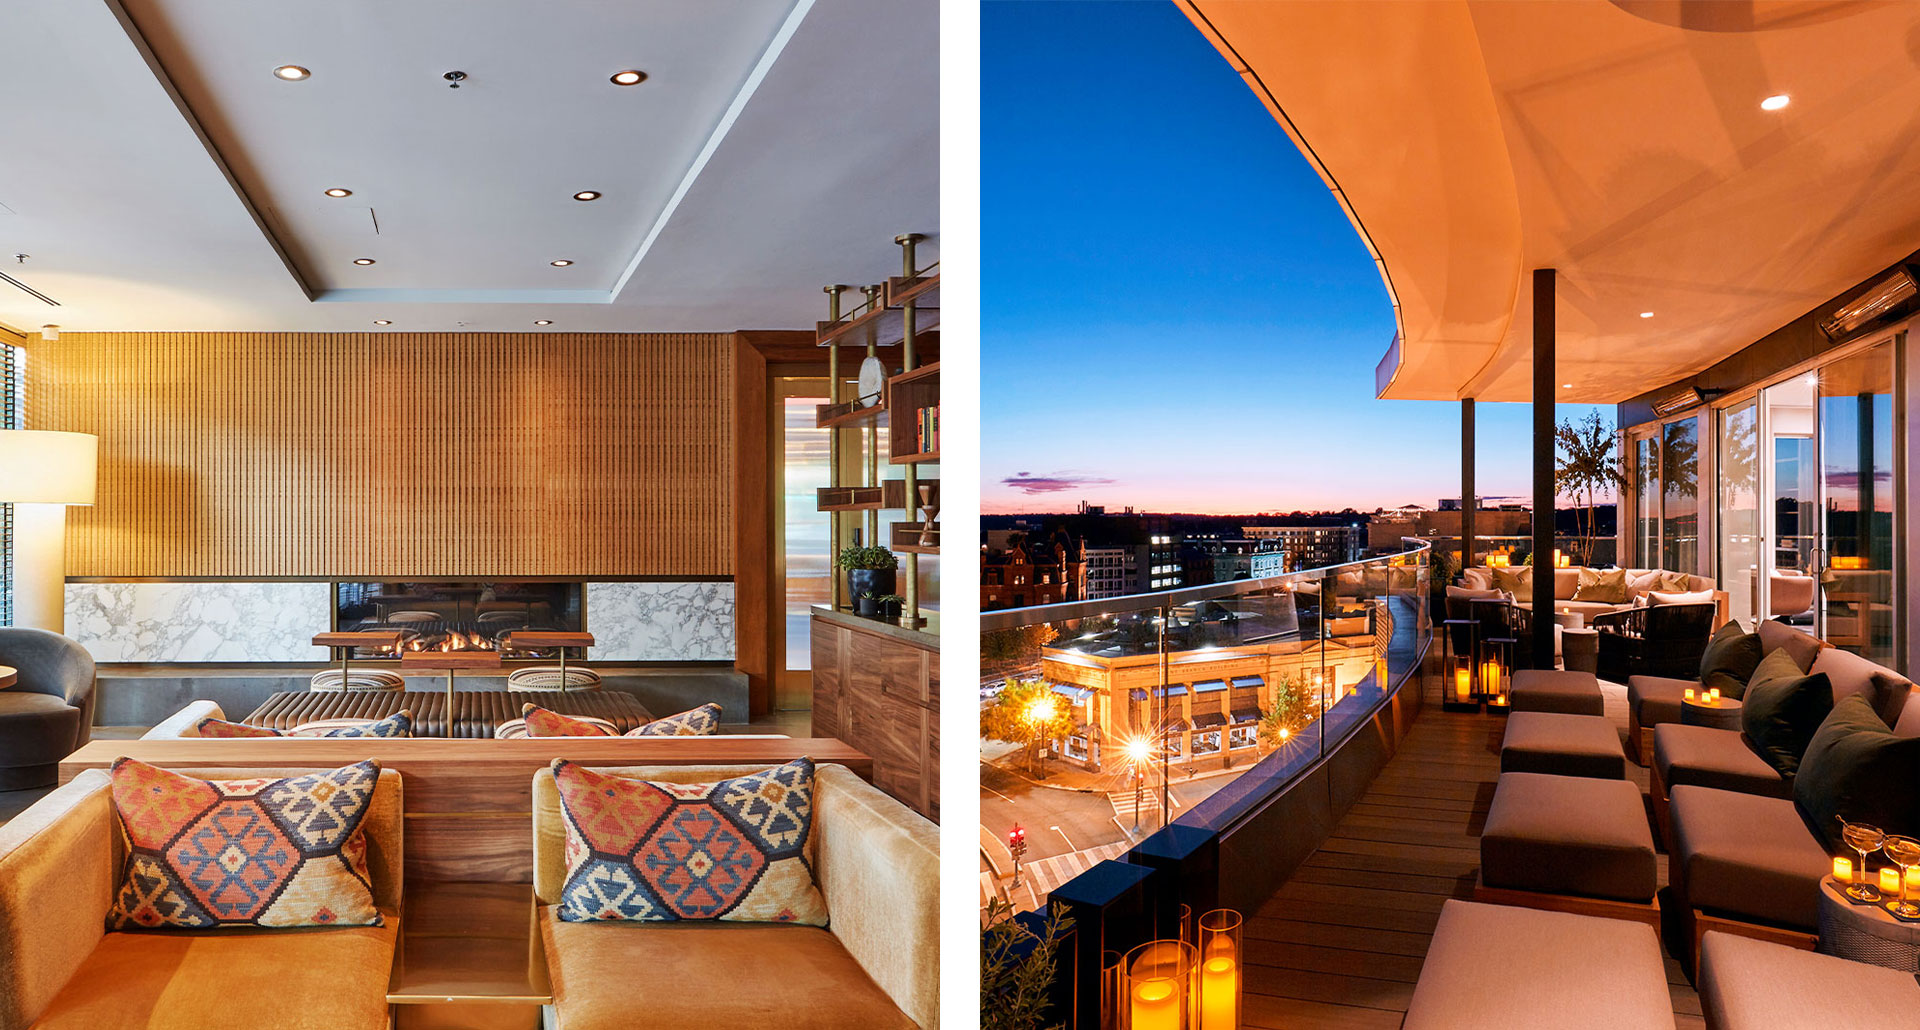 The Dupont Circle - boutique hotel in Washington D.C.